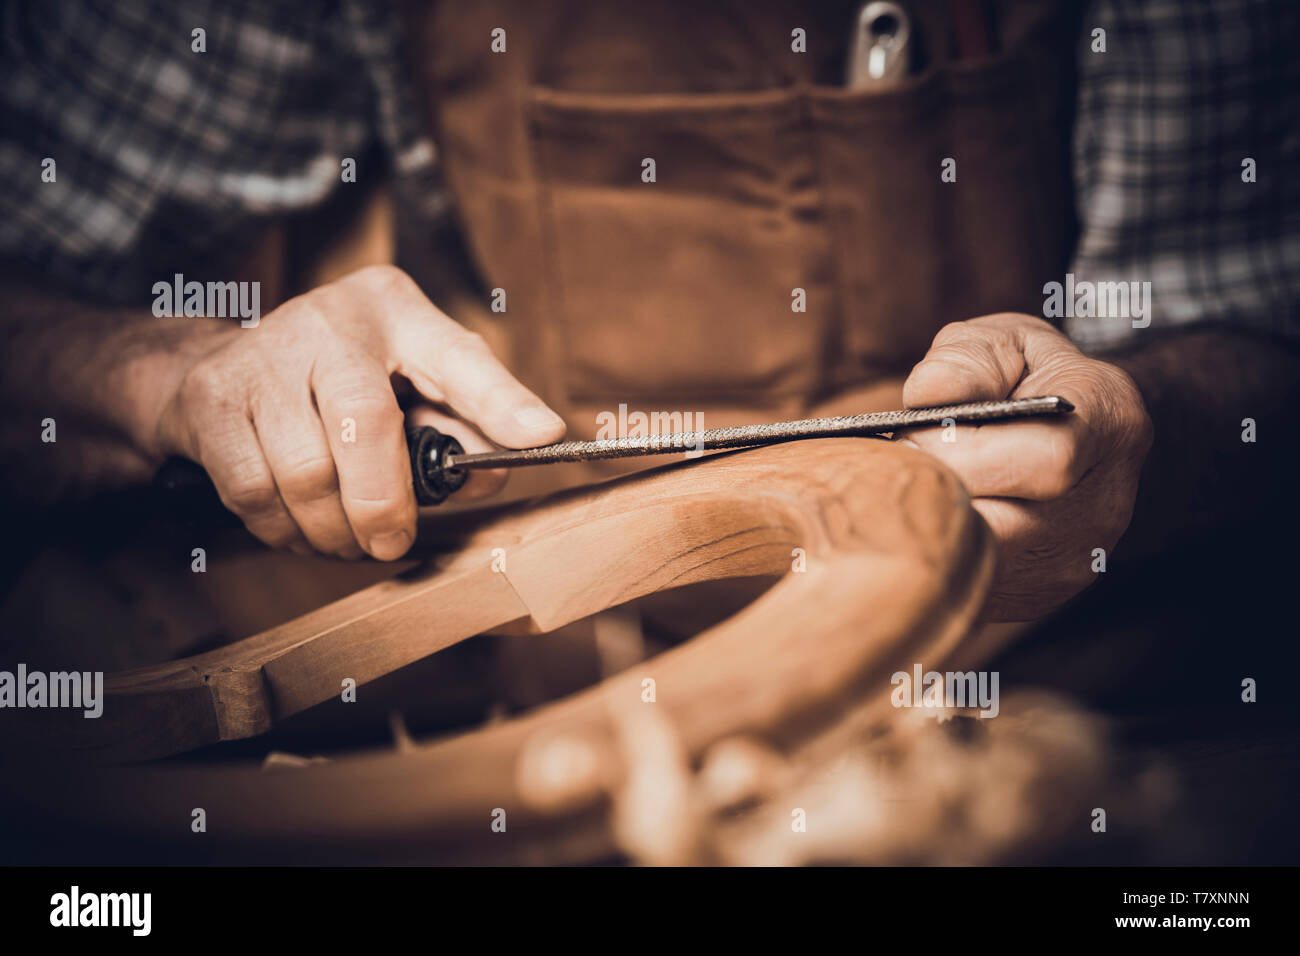 Detail of a carpenter using a wooden rasp on a chair. inside his workshop. - Stock Image